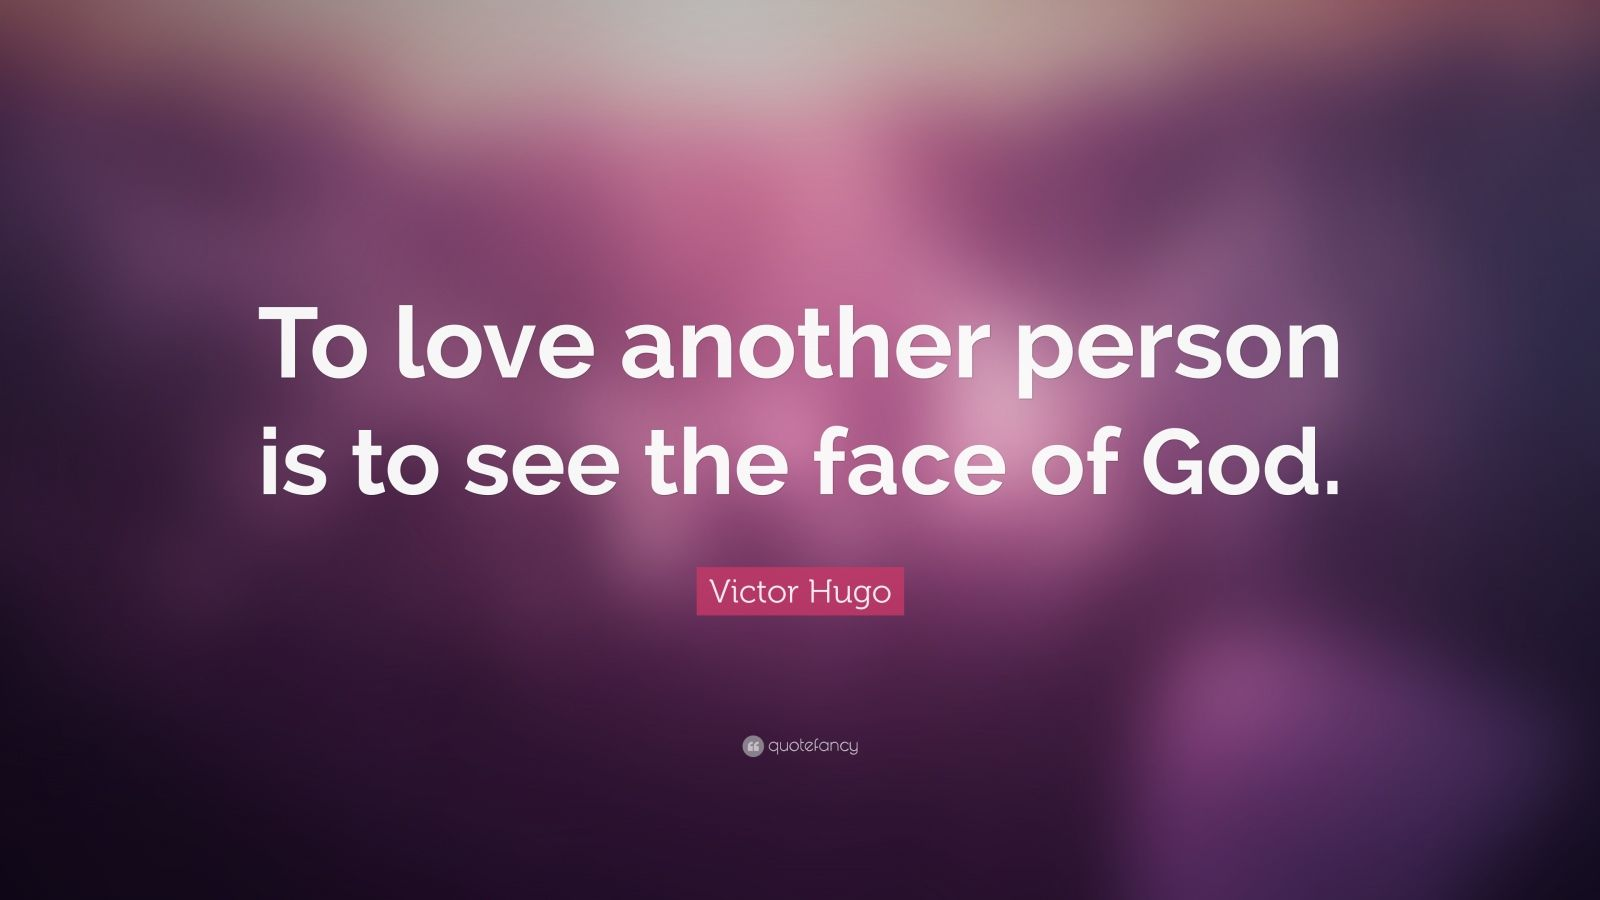 to love another person is to see the face of god essay Summary: in leadership, the face off that requires nerves and stamina to stand before another person is notably not always the best strategy for the people at all times as we see with king david and king saul however, god used face off against jezebel.